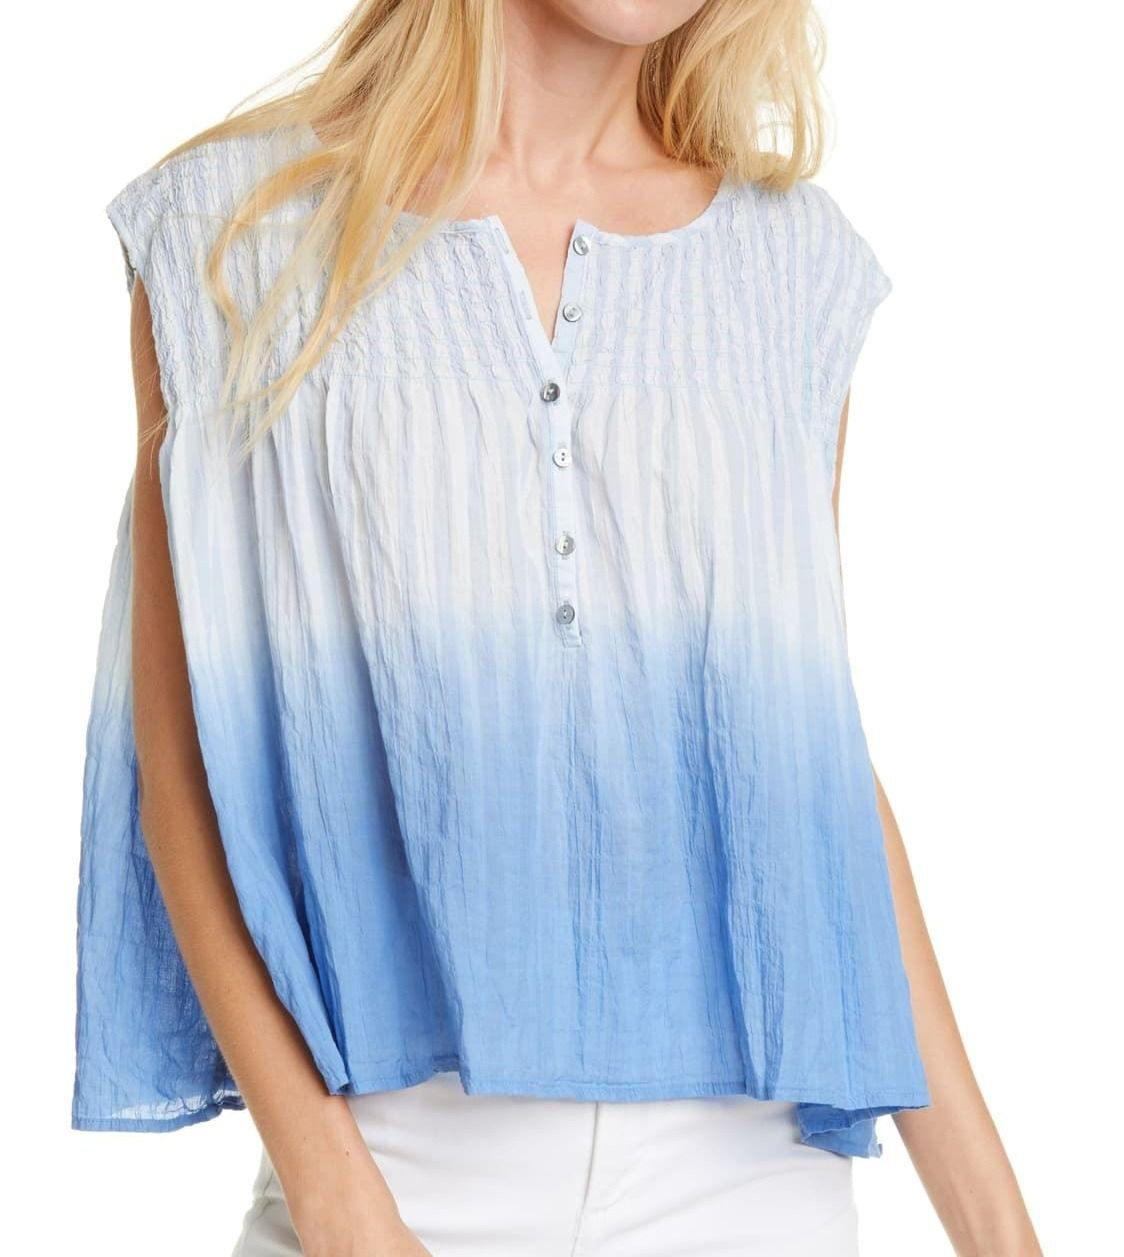 Free People Women's Blouse Blue Size Small S Smocked Henley Ombre